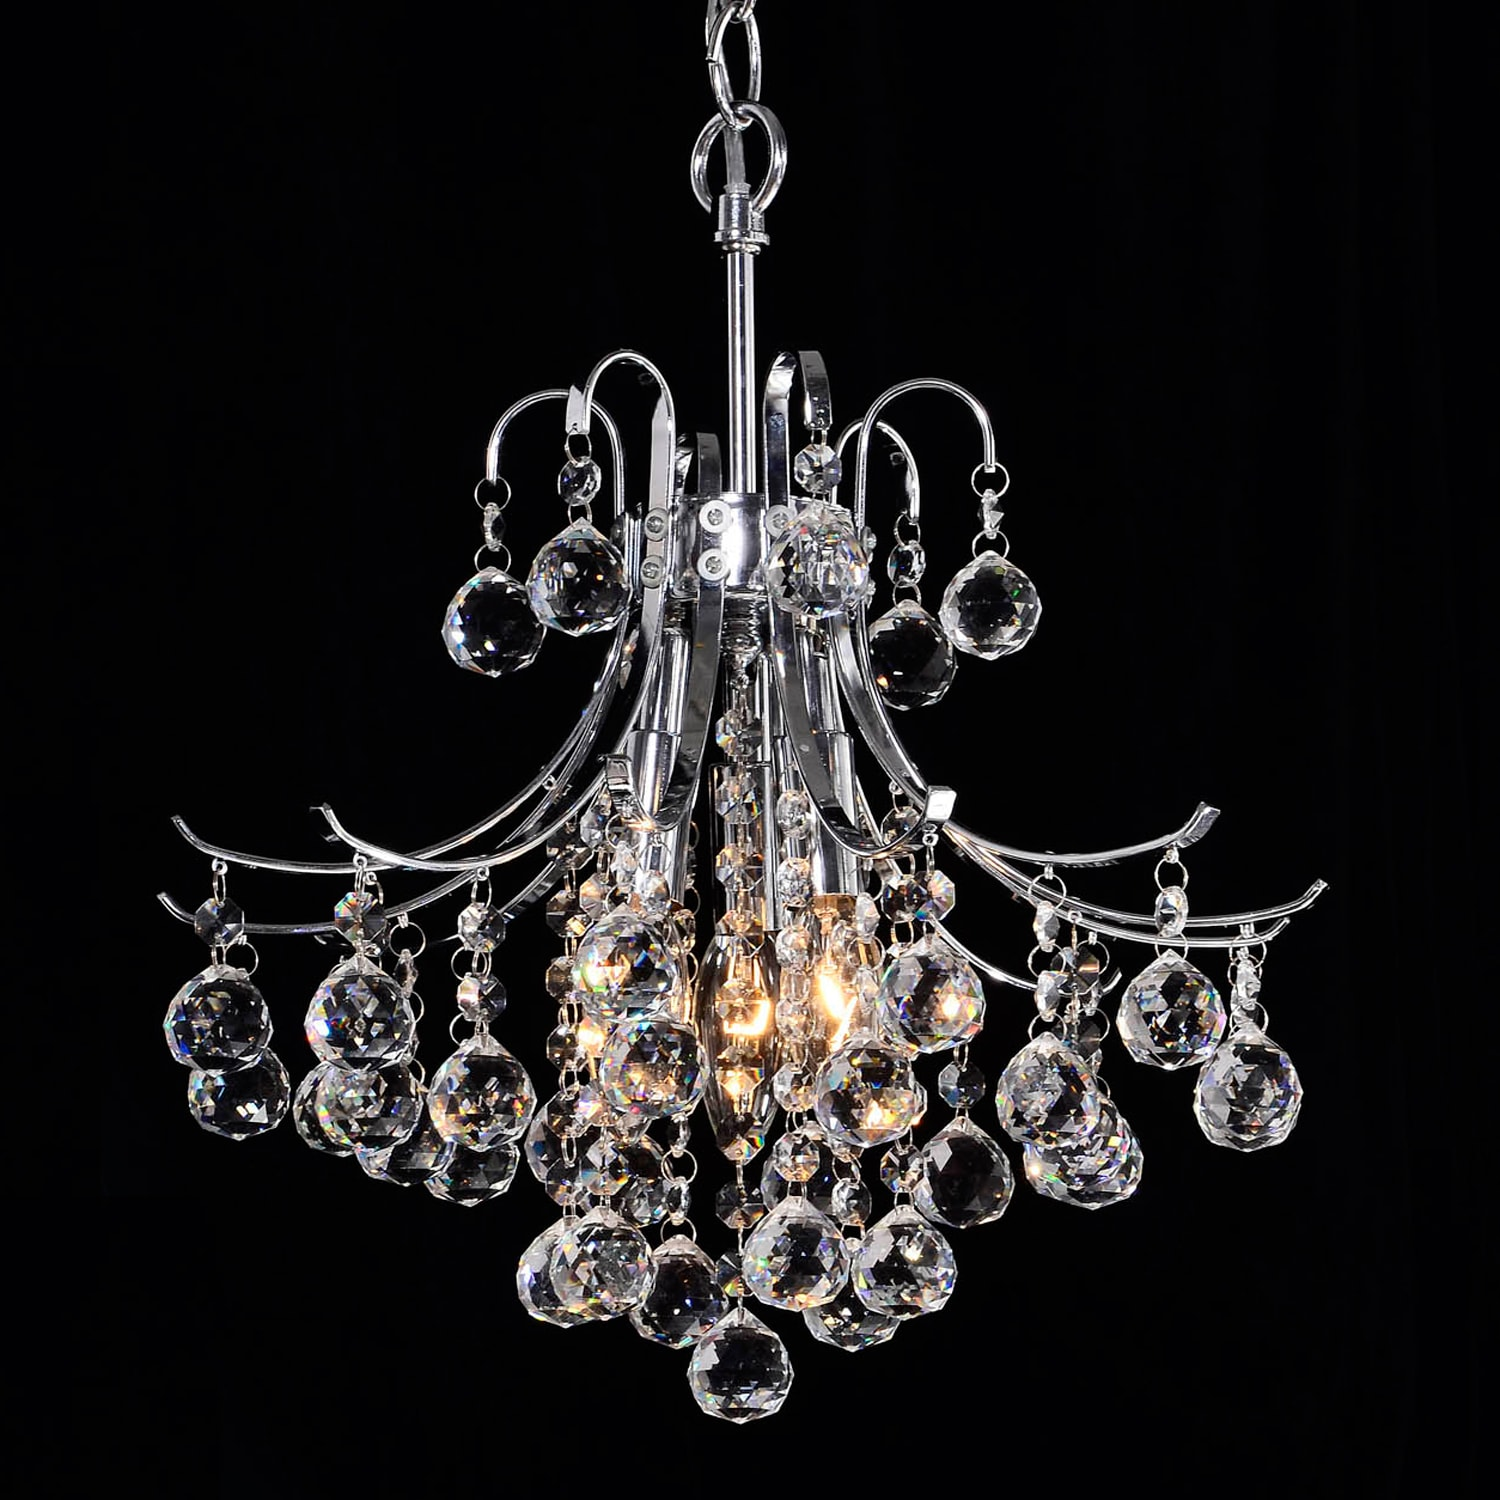 Namika 3-Light Crystal and Chrome Chandelier